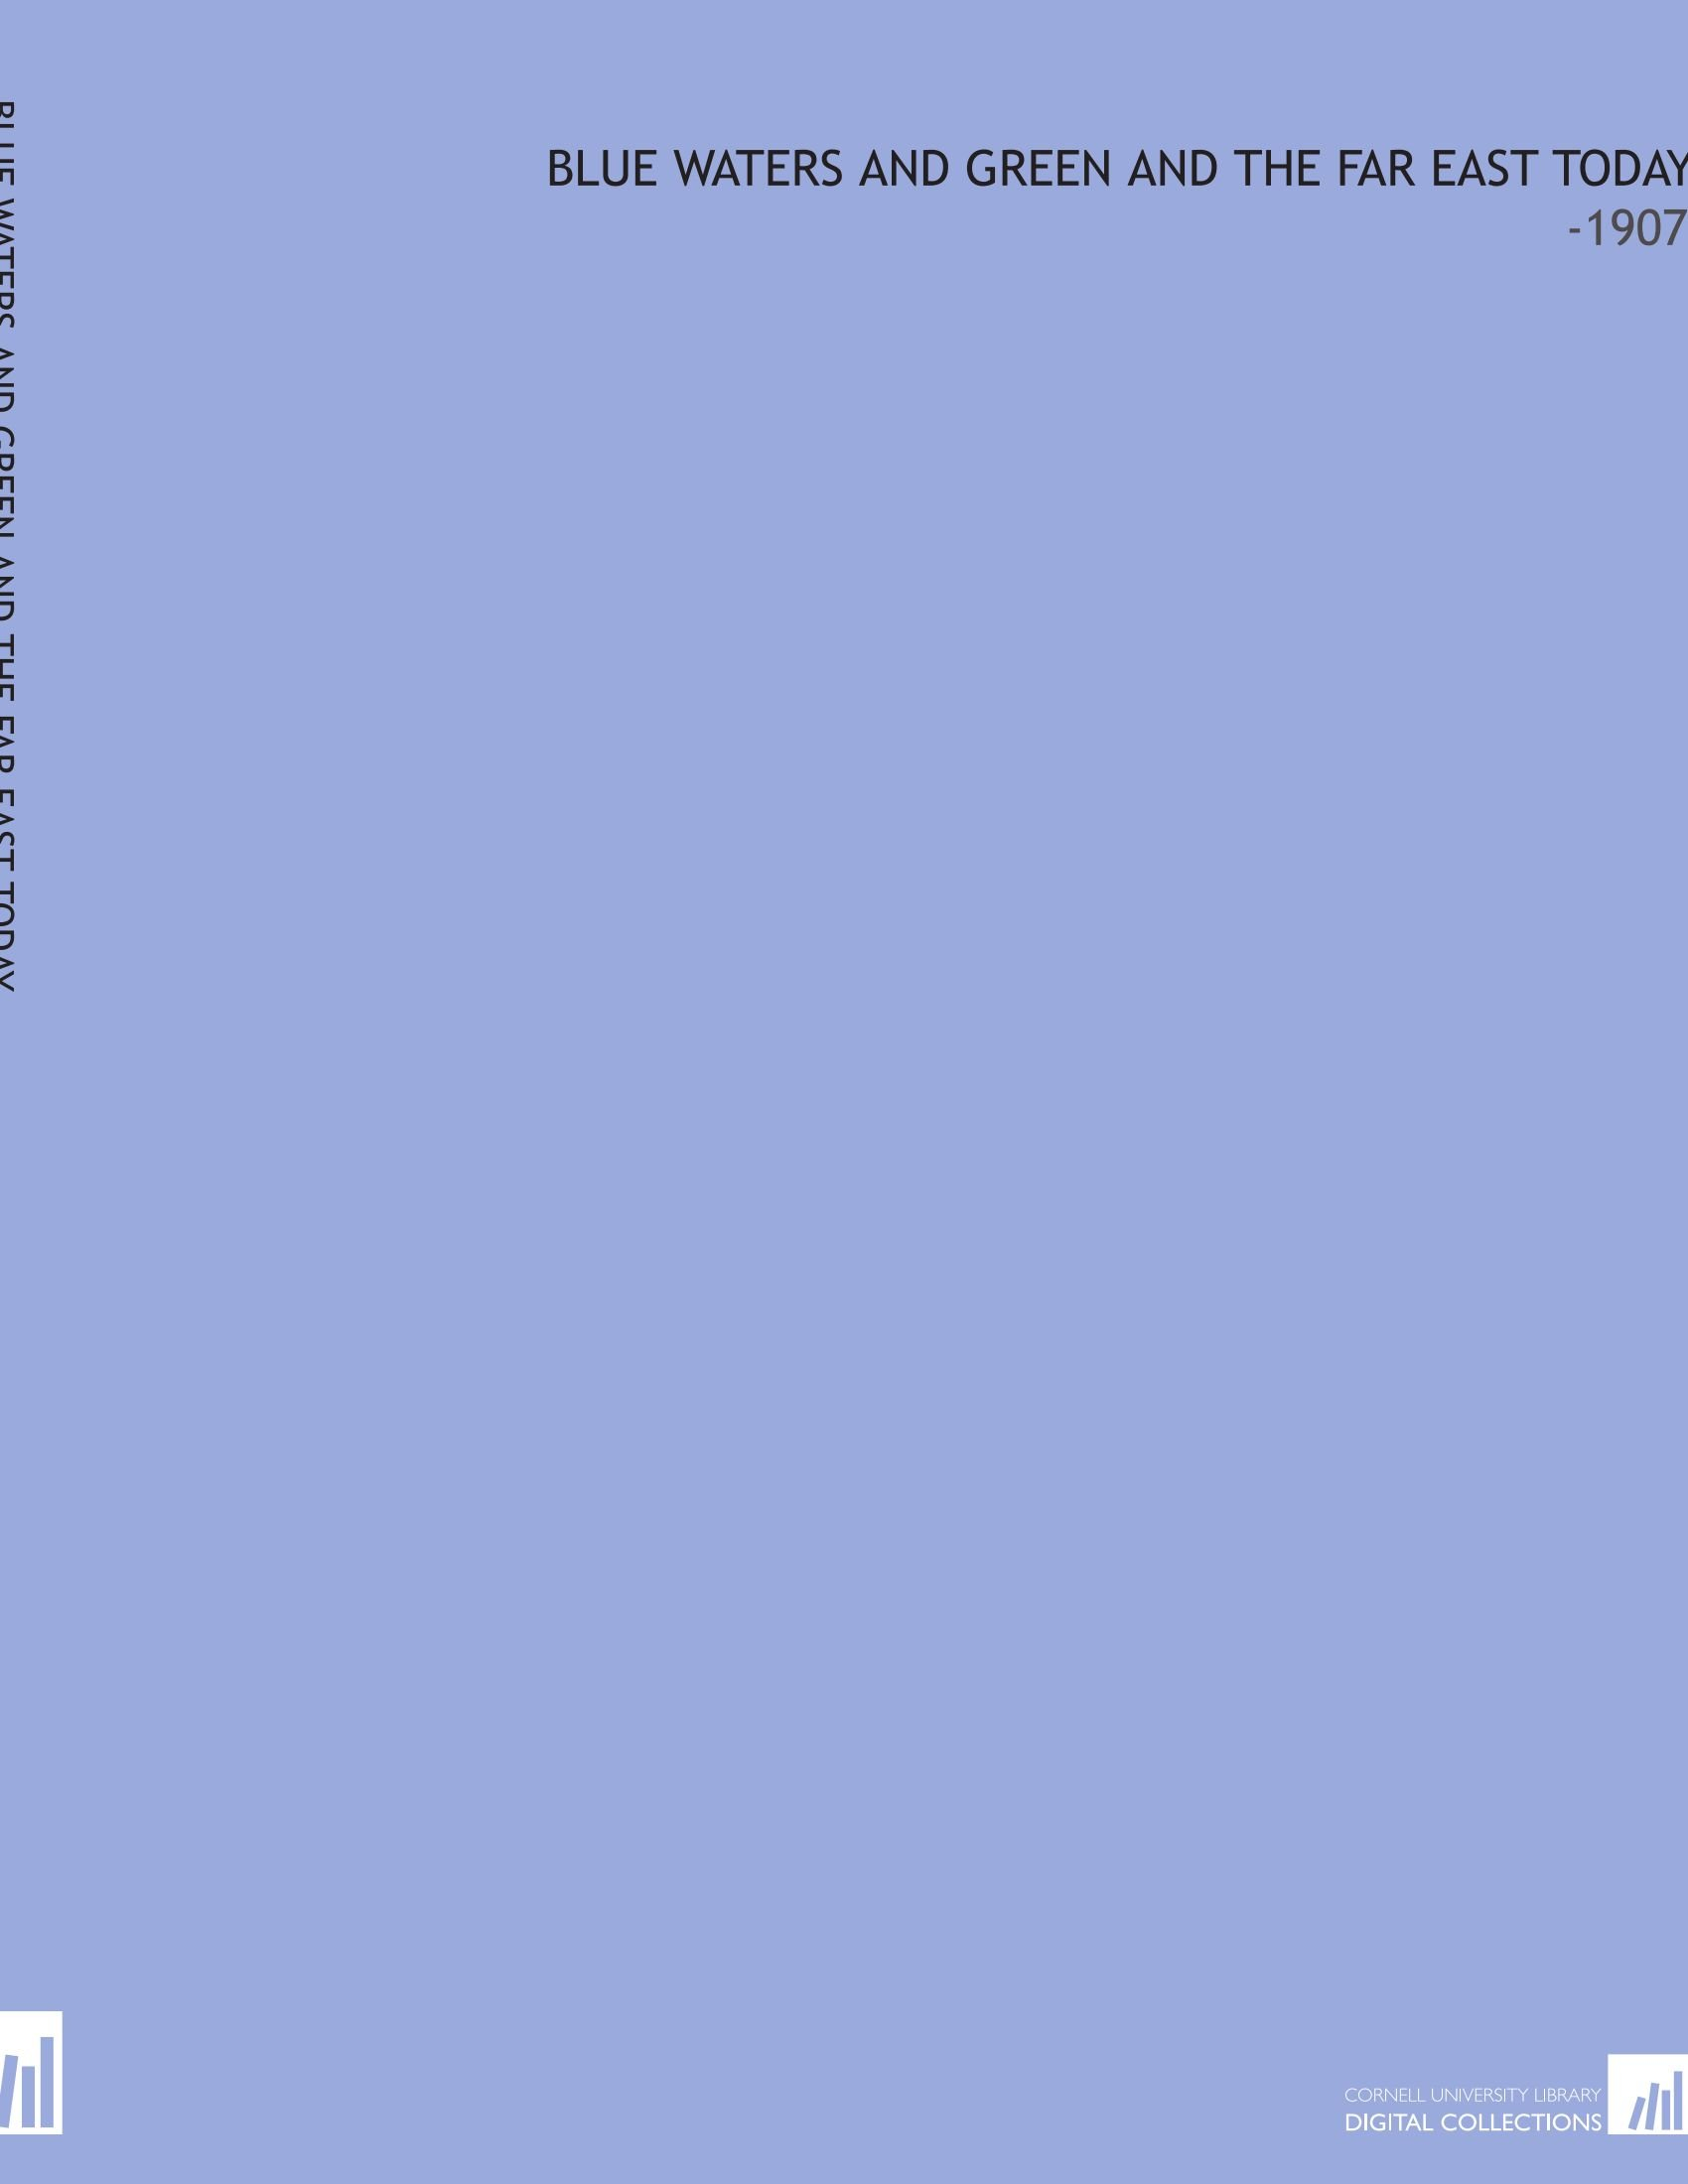 Download Blue Waters and Green and the Far East Today: -1907 PDF